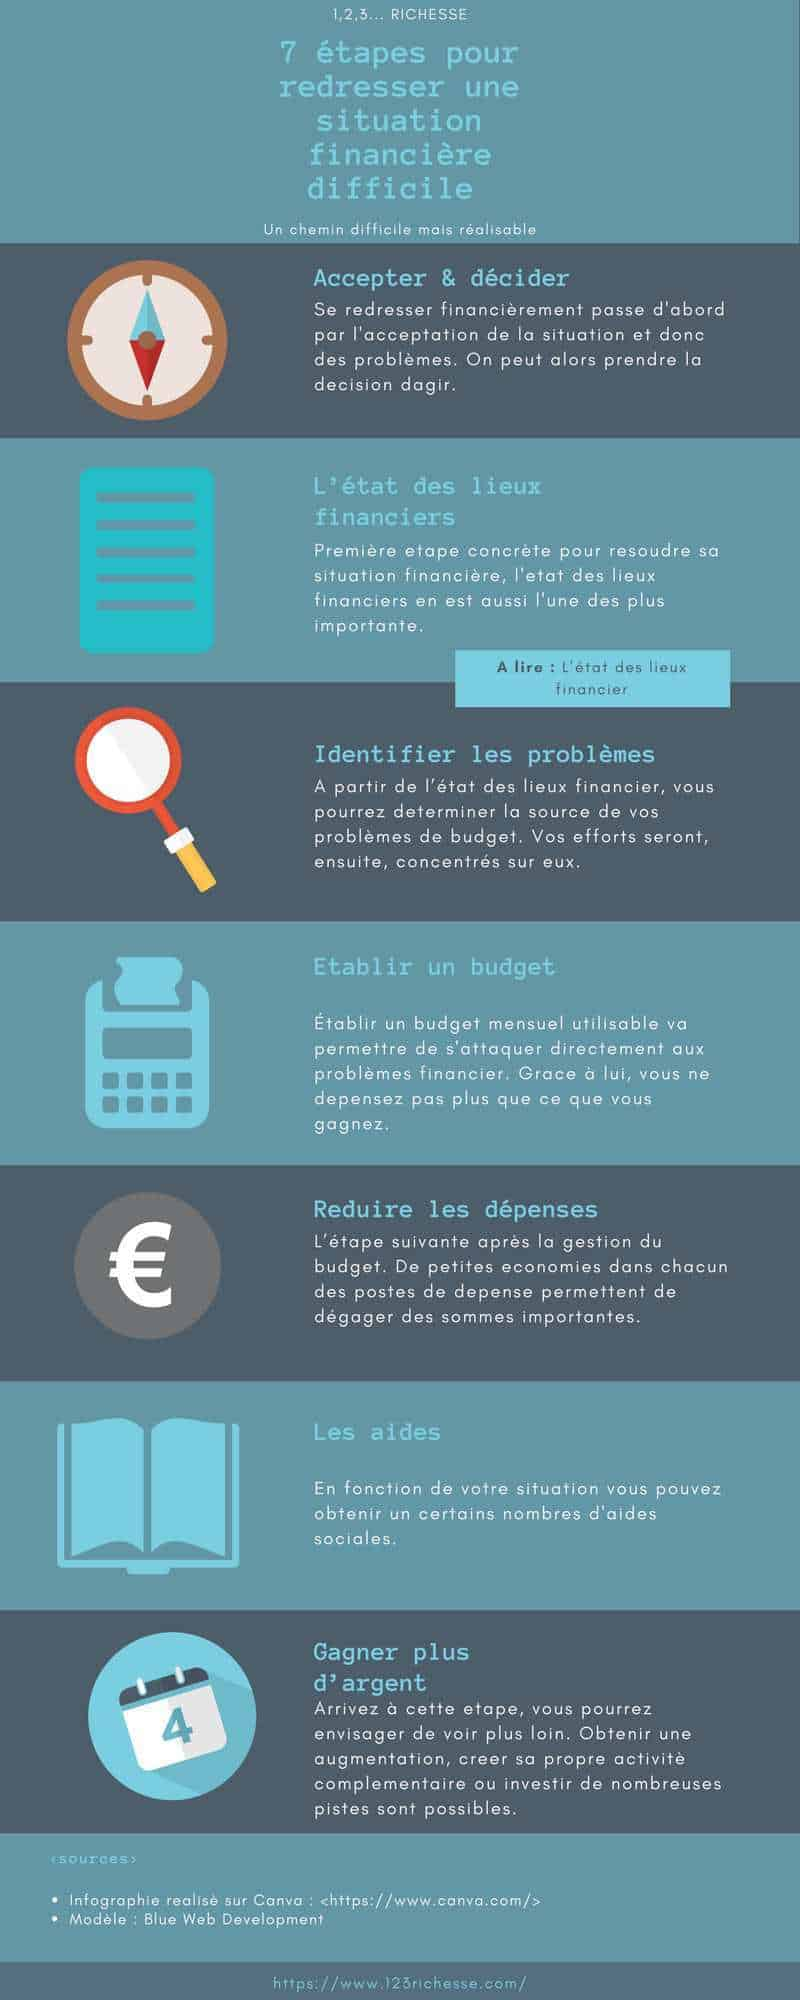 Redresser une situation financiere difficile. Infographie